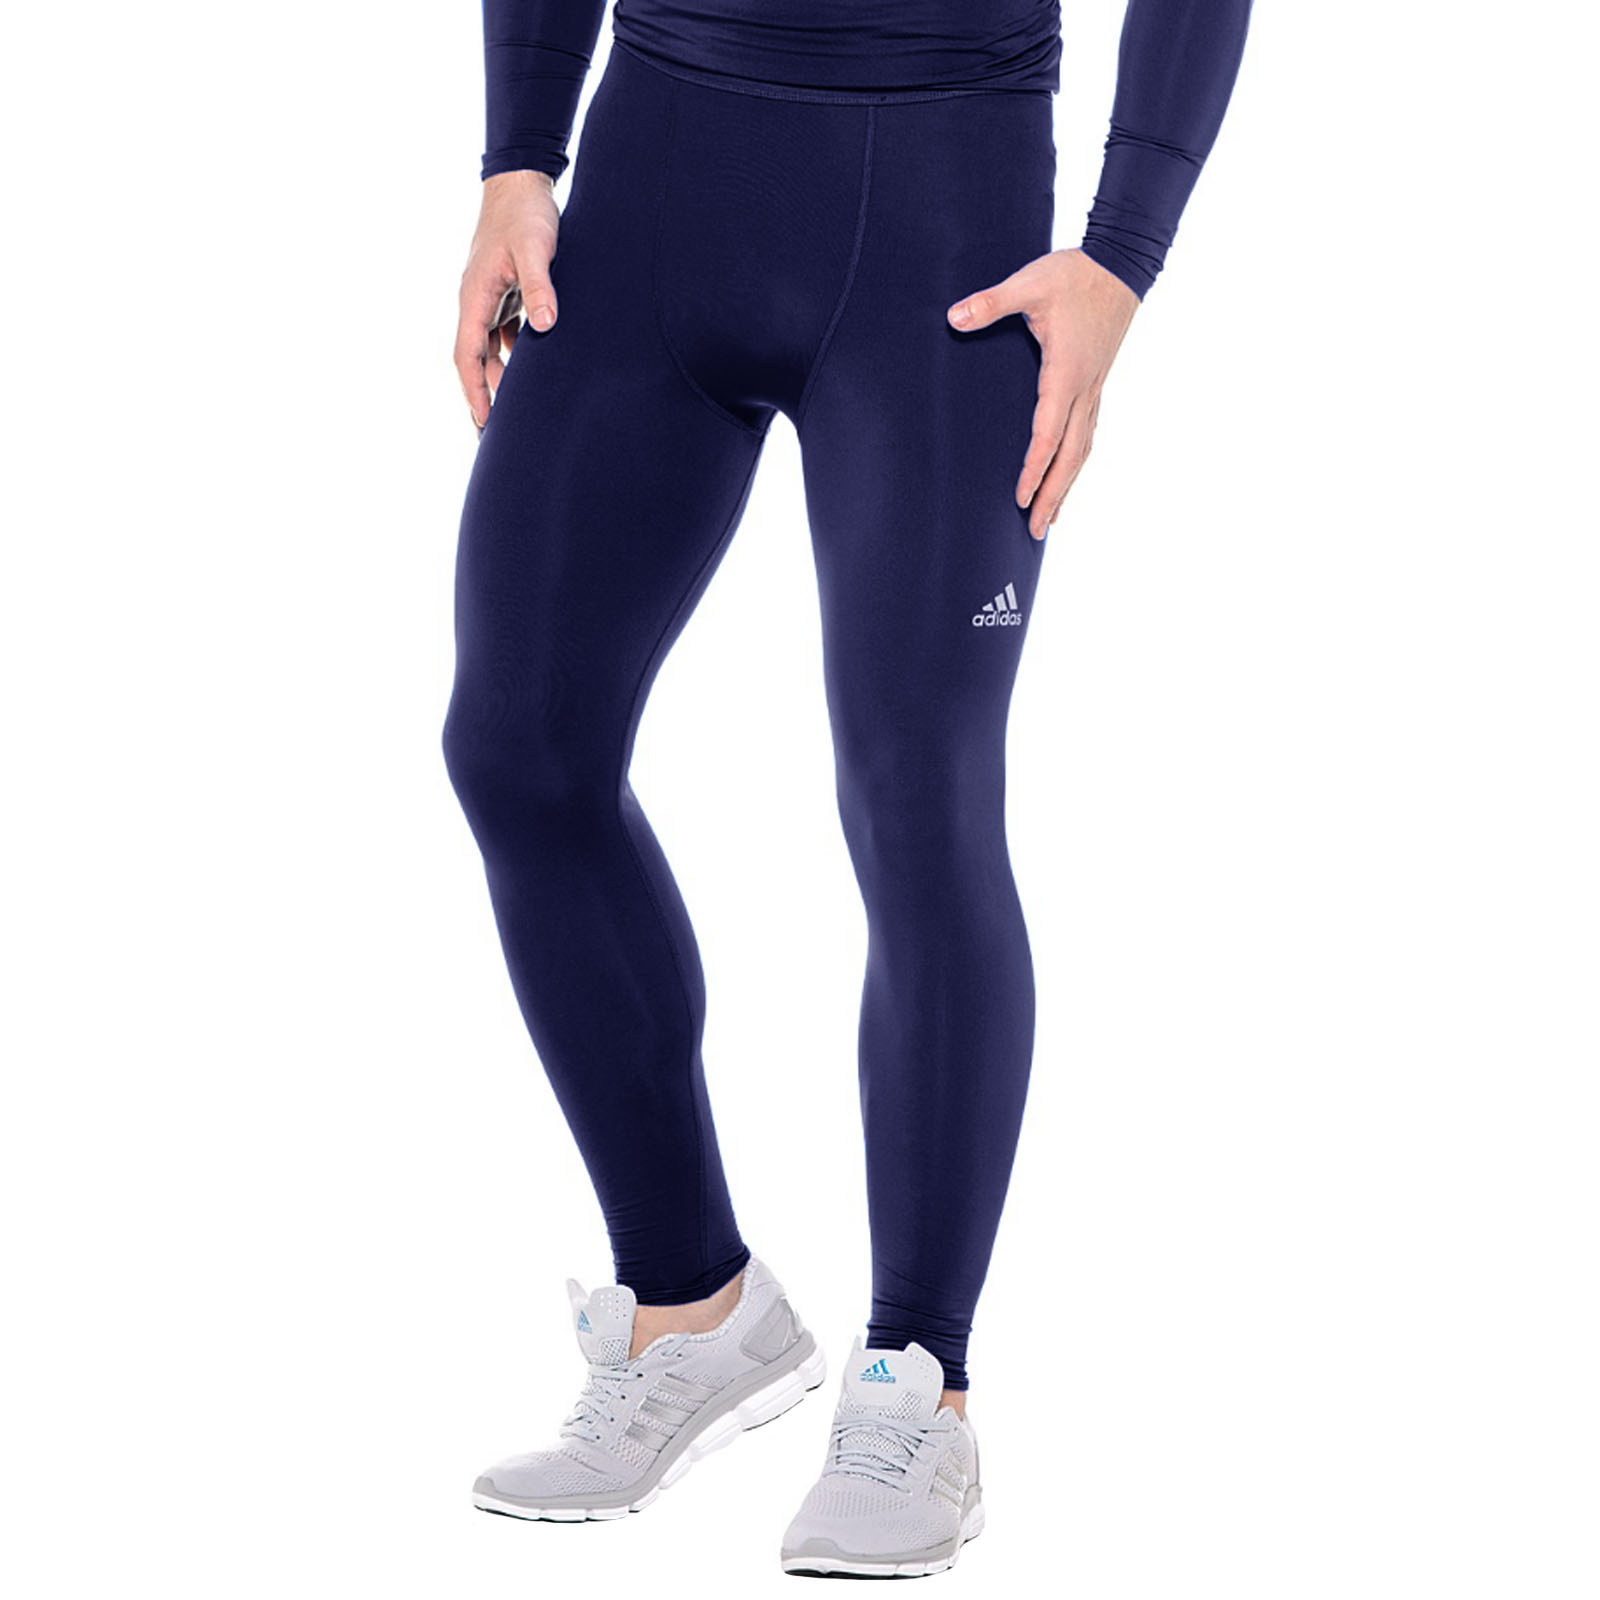 adidas performance men 39 s compression techfit base layer long tights ebay. Black Bedroom Furniture Sets. Home Design Ideas